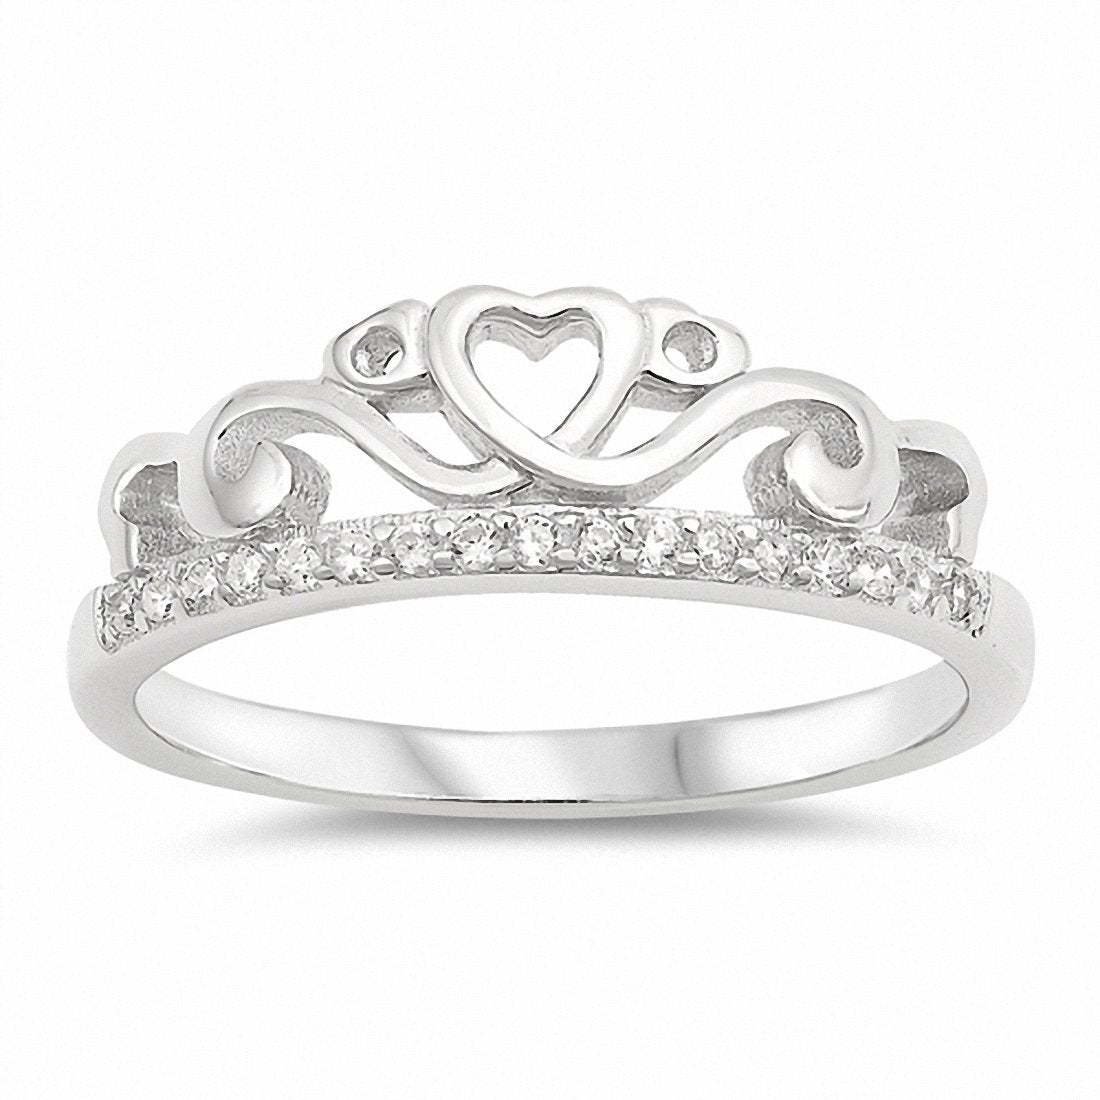 Filigree Crown Heart Ring Round Cubic Zirconia 925 Sterling Silver Choose Color